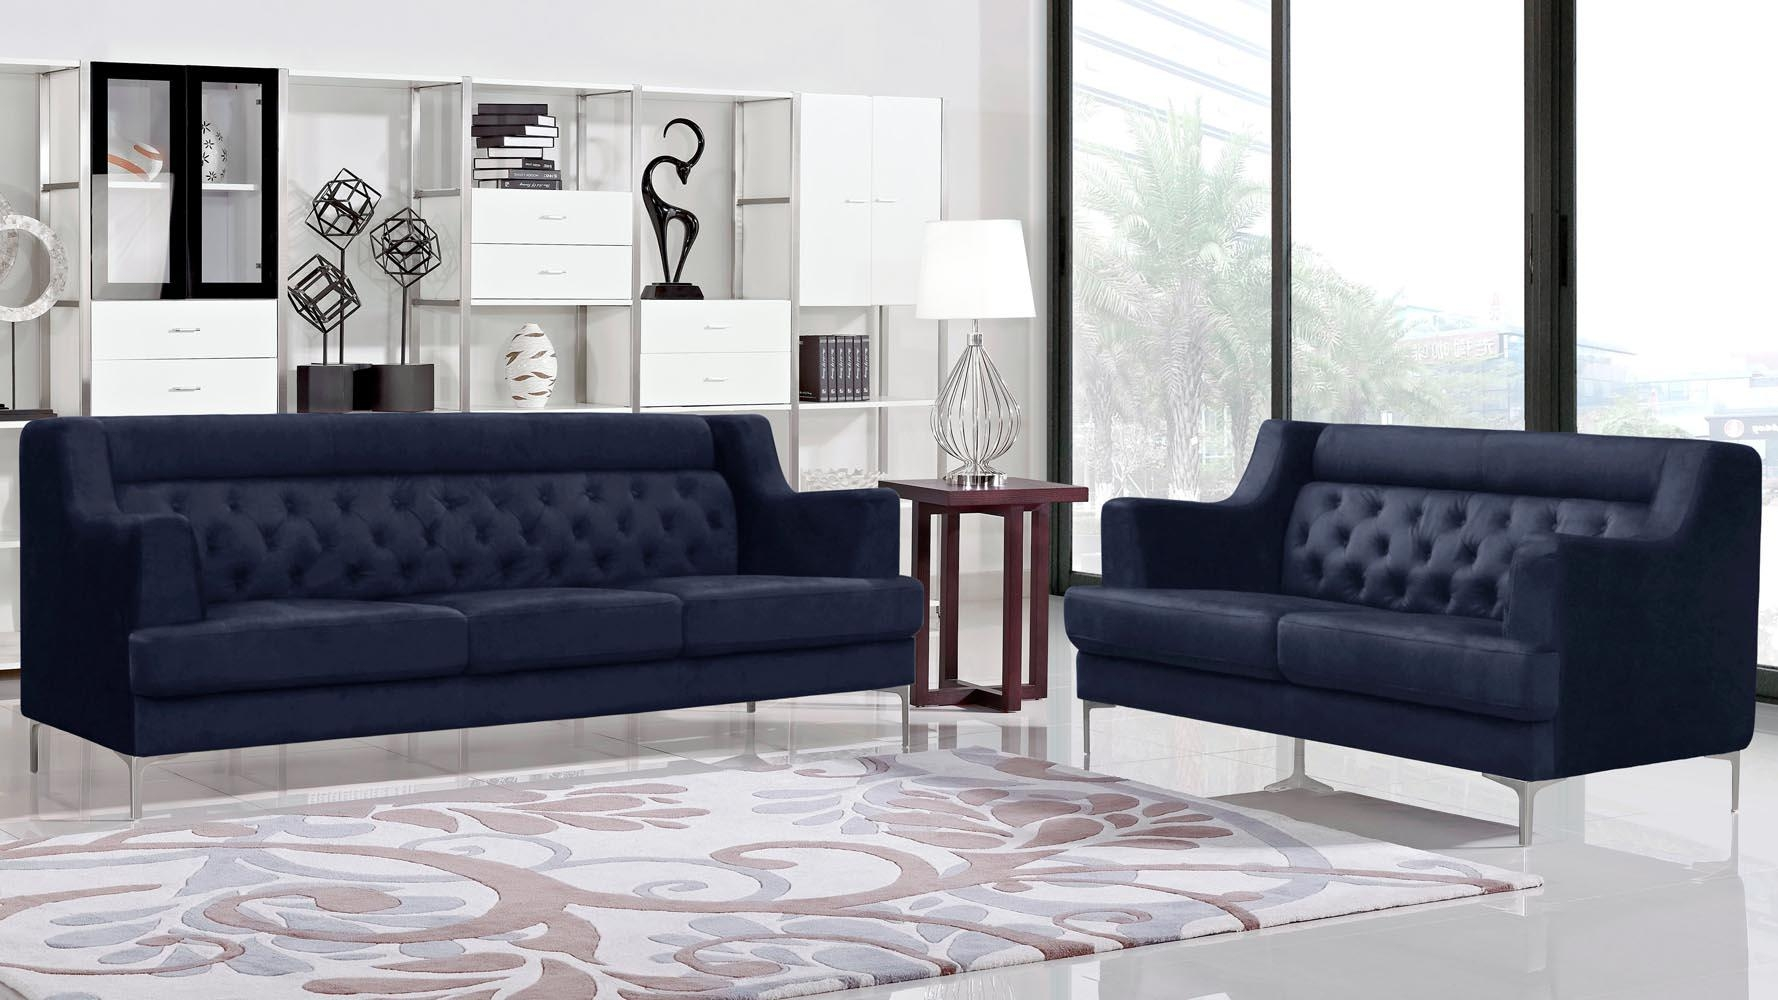 Zara Fabric Tufted Sofa With Chrome Legs - Navy Blue | Zuri Furniture in Sofas With Chrome Legs